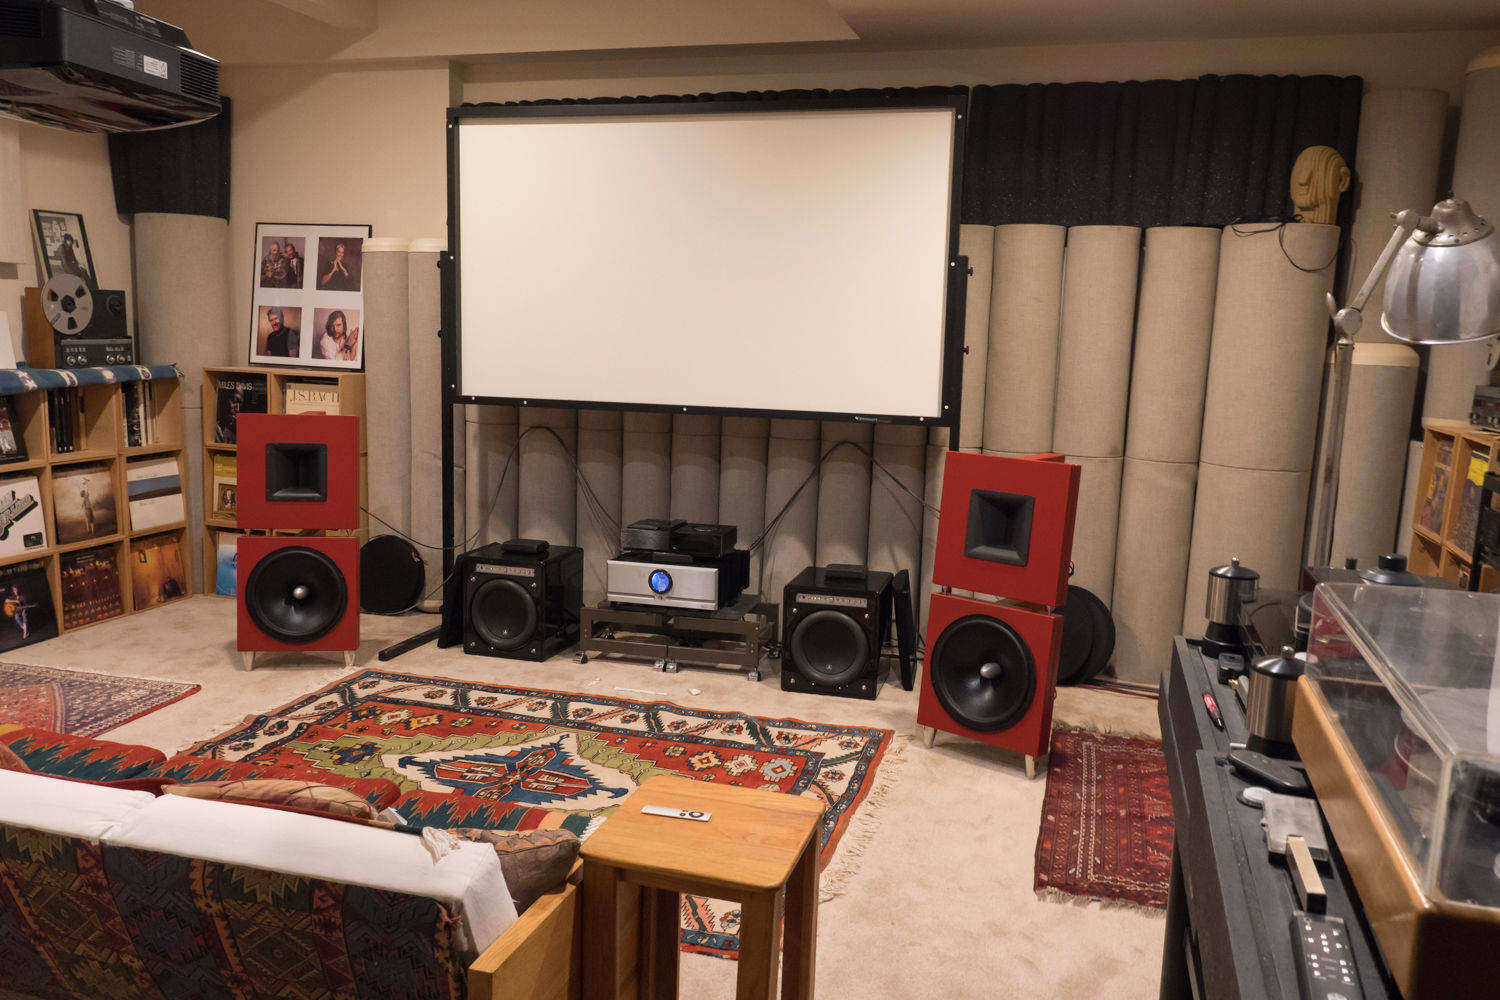 http://audiophilereview.com/images/CASmeeting3a.jpg